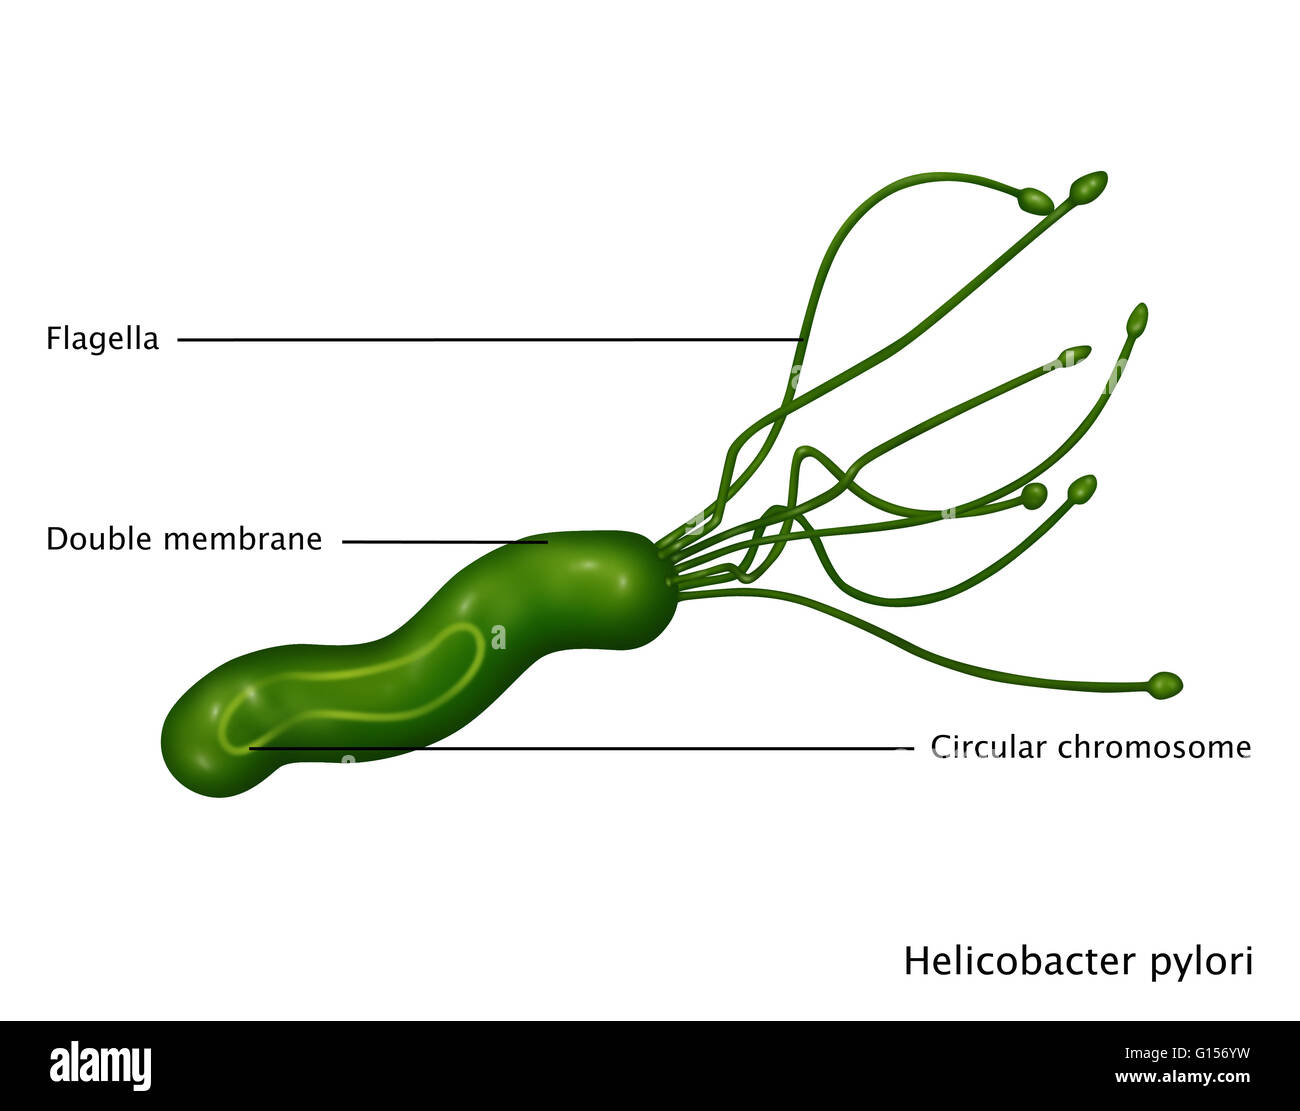 Illustration of Helicobacter pylori bacteria, a gram-negative spiral-shaped  bacterium found in the mucus lining of the stomach. It causes gastritis,  and is ...